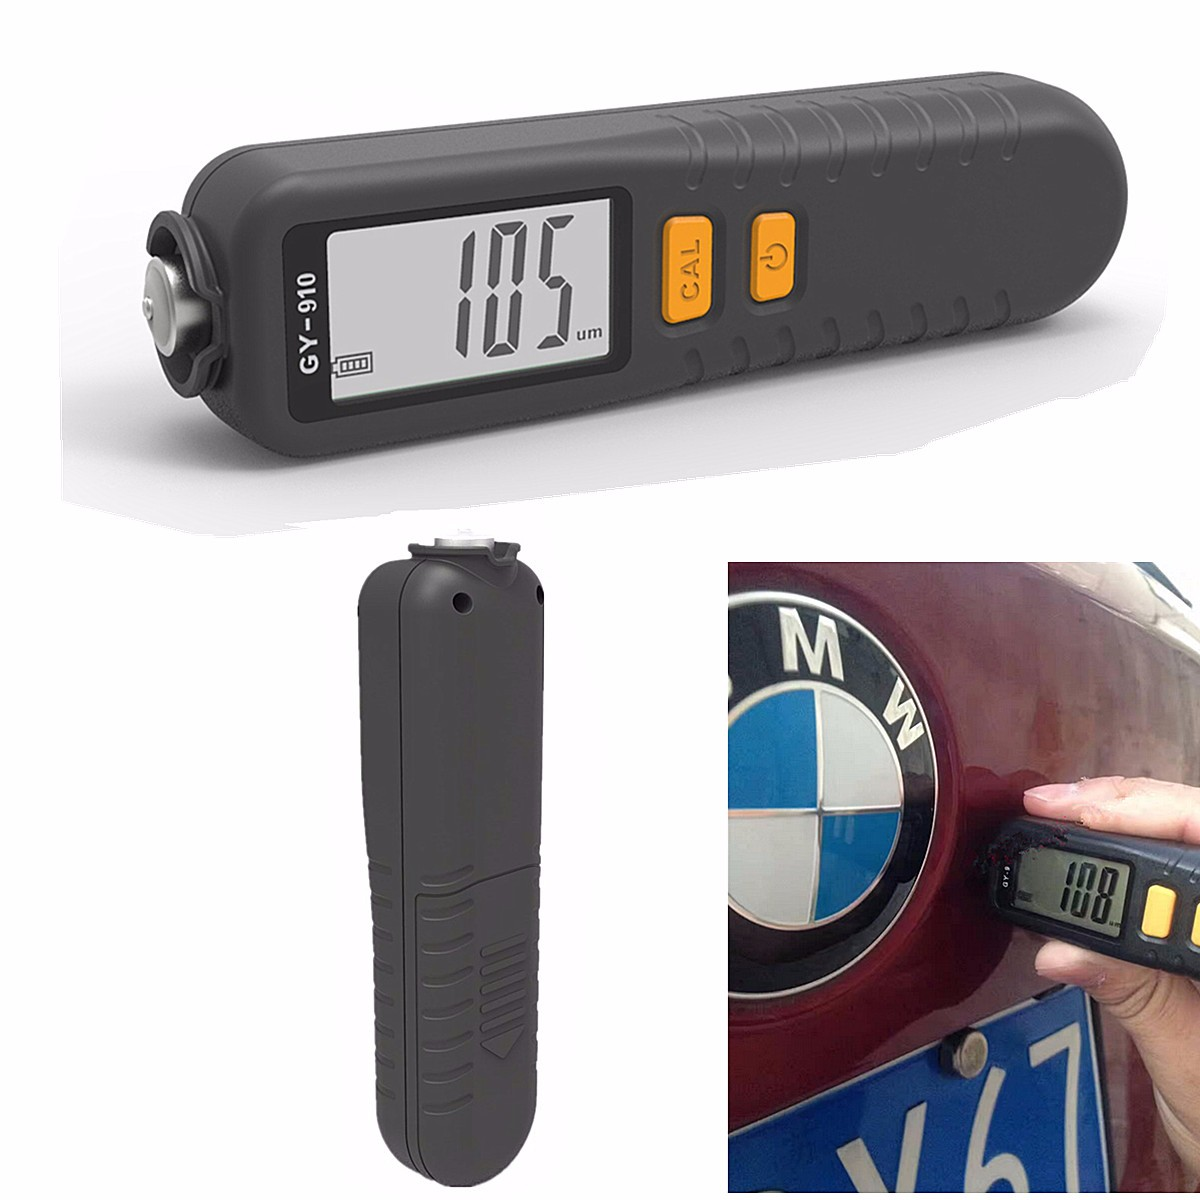 LCD Digital Coating Thickness Gauge 1 micron/0-1300 Handheld Car Paint Film Thickness Tester Meter Measuring Fe/NFe Coatings digital film coating thickness gauge mini ultrasonic automotive lcd car coat painting thickness tester width measure meter gm200